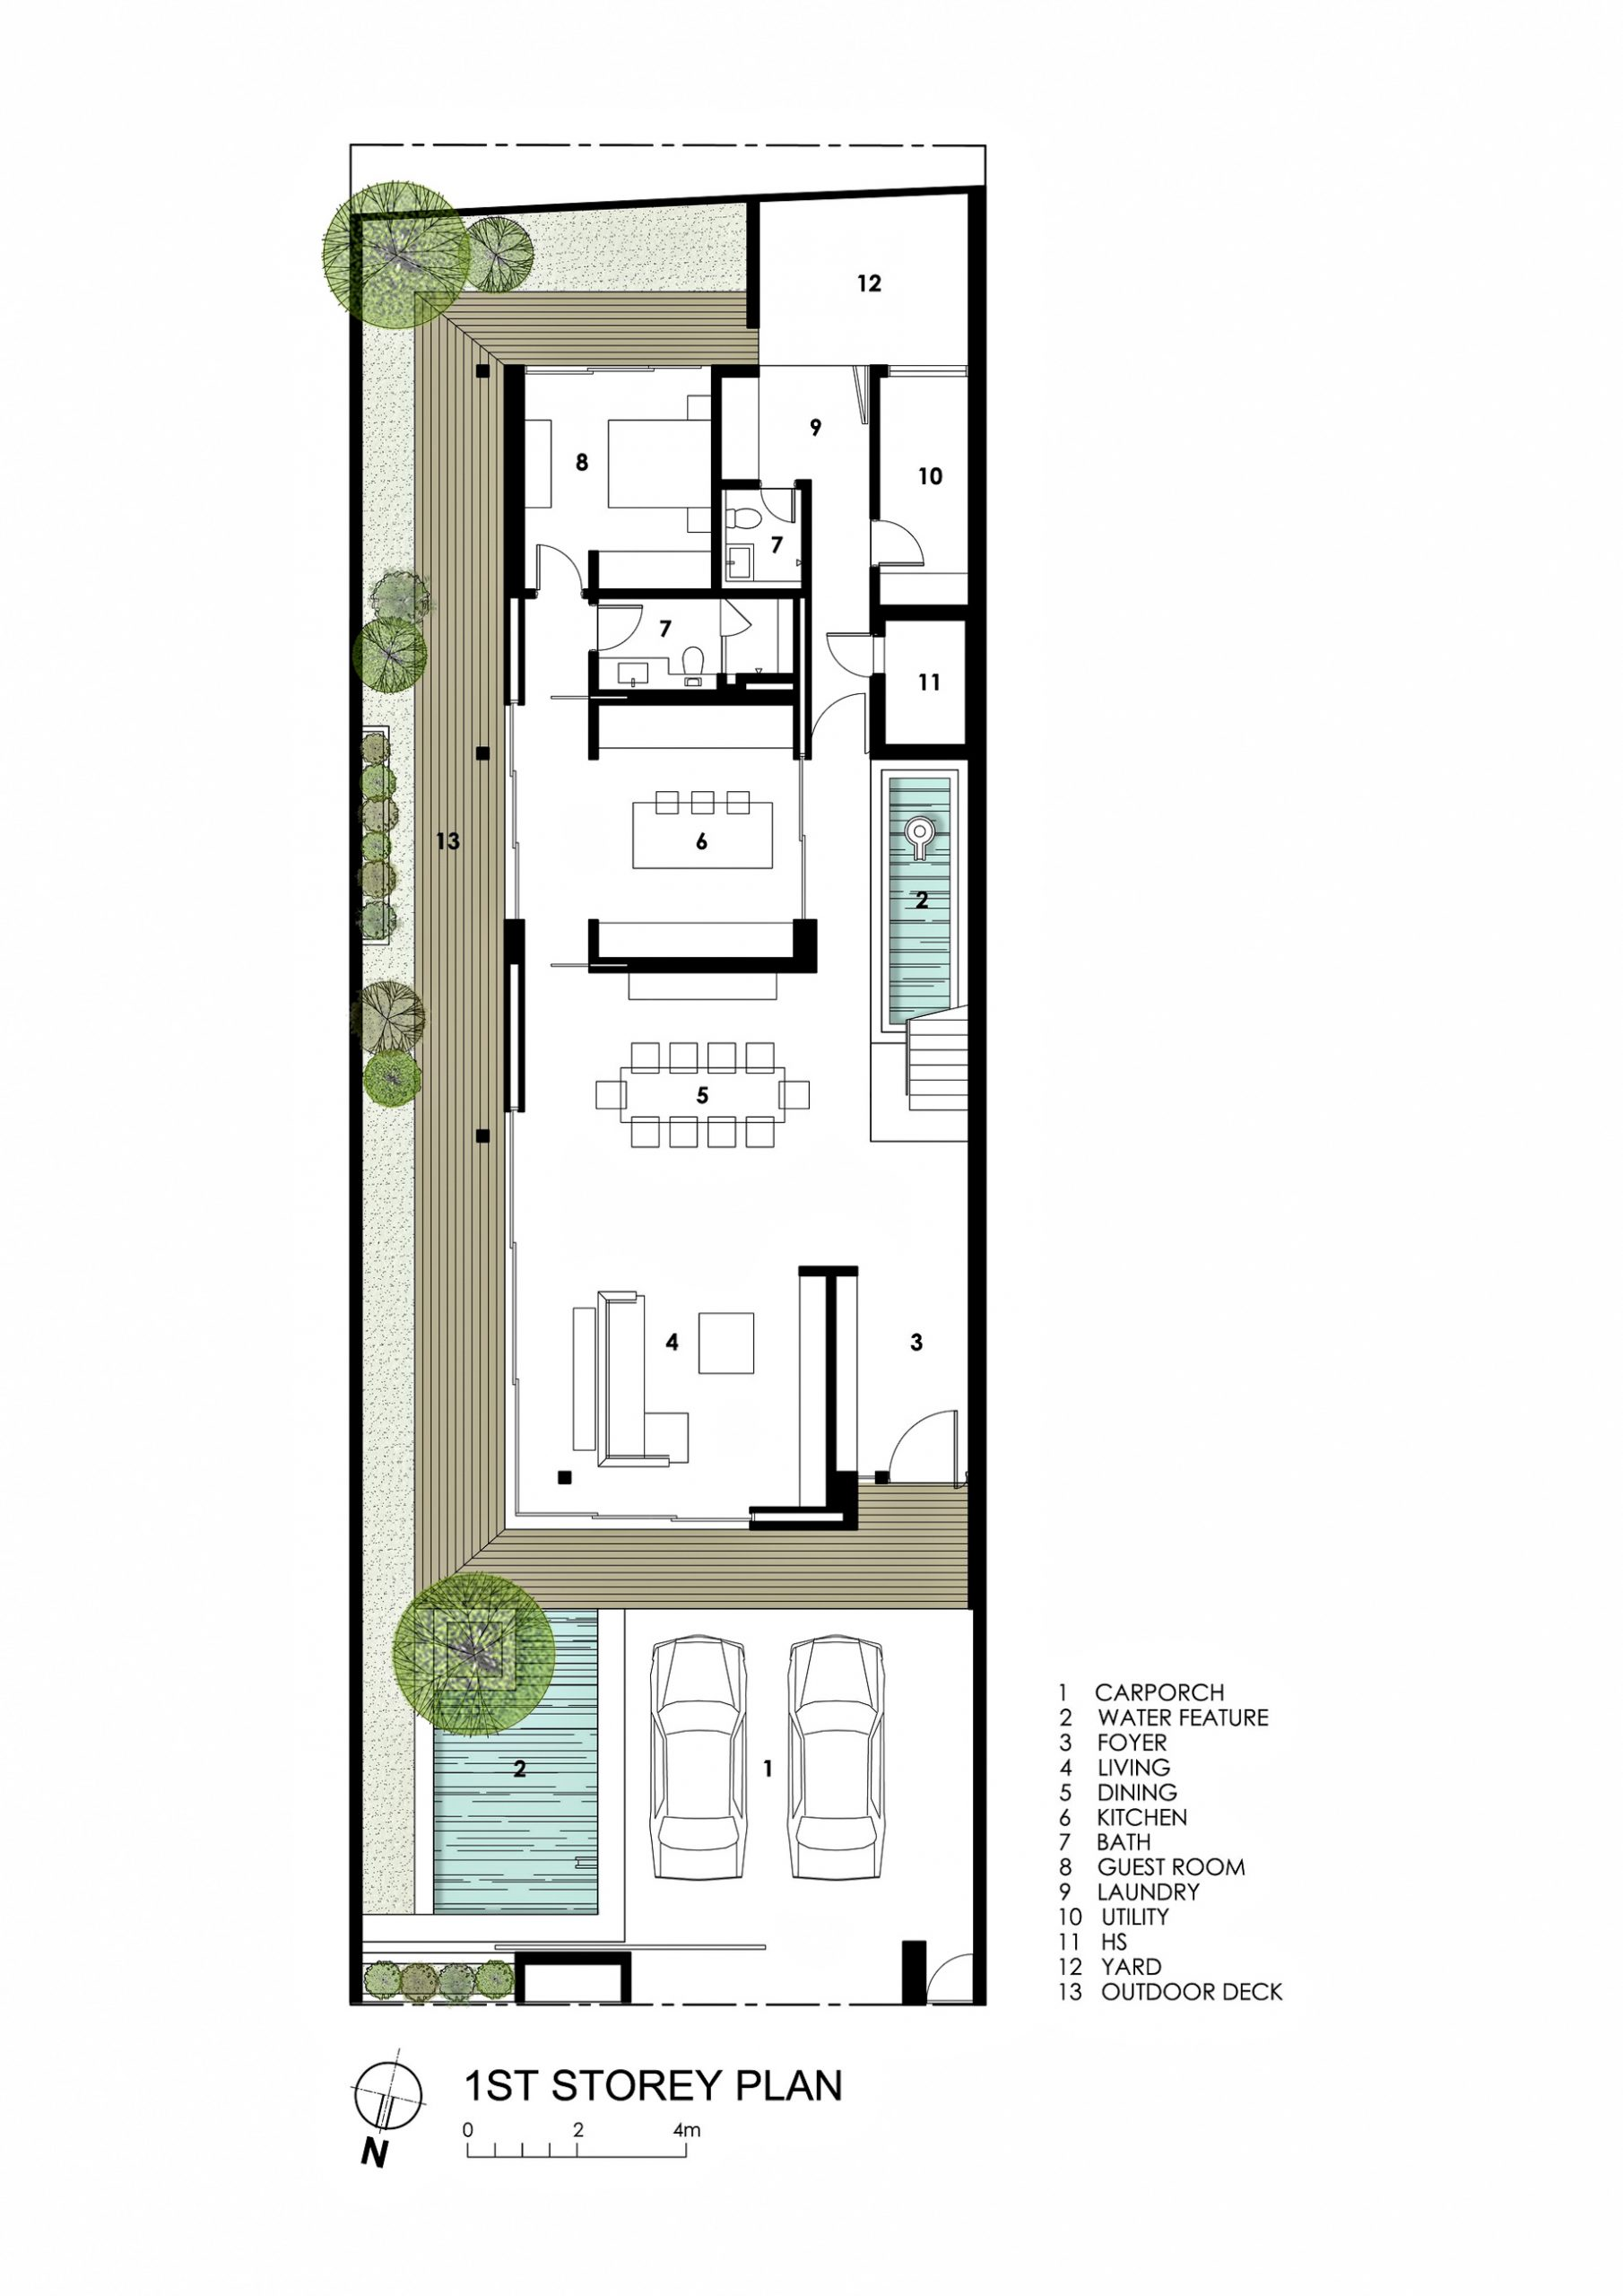 First Floor Plan - Far Sight House Luxury Residence - Bukit Timah, Singapore